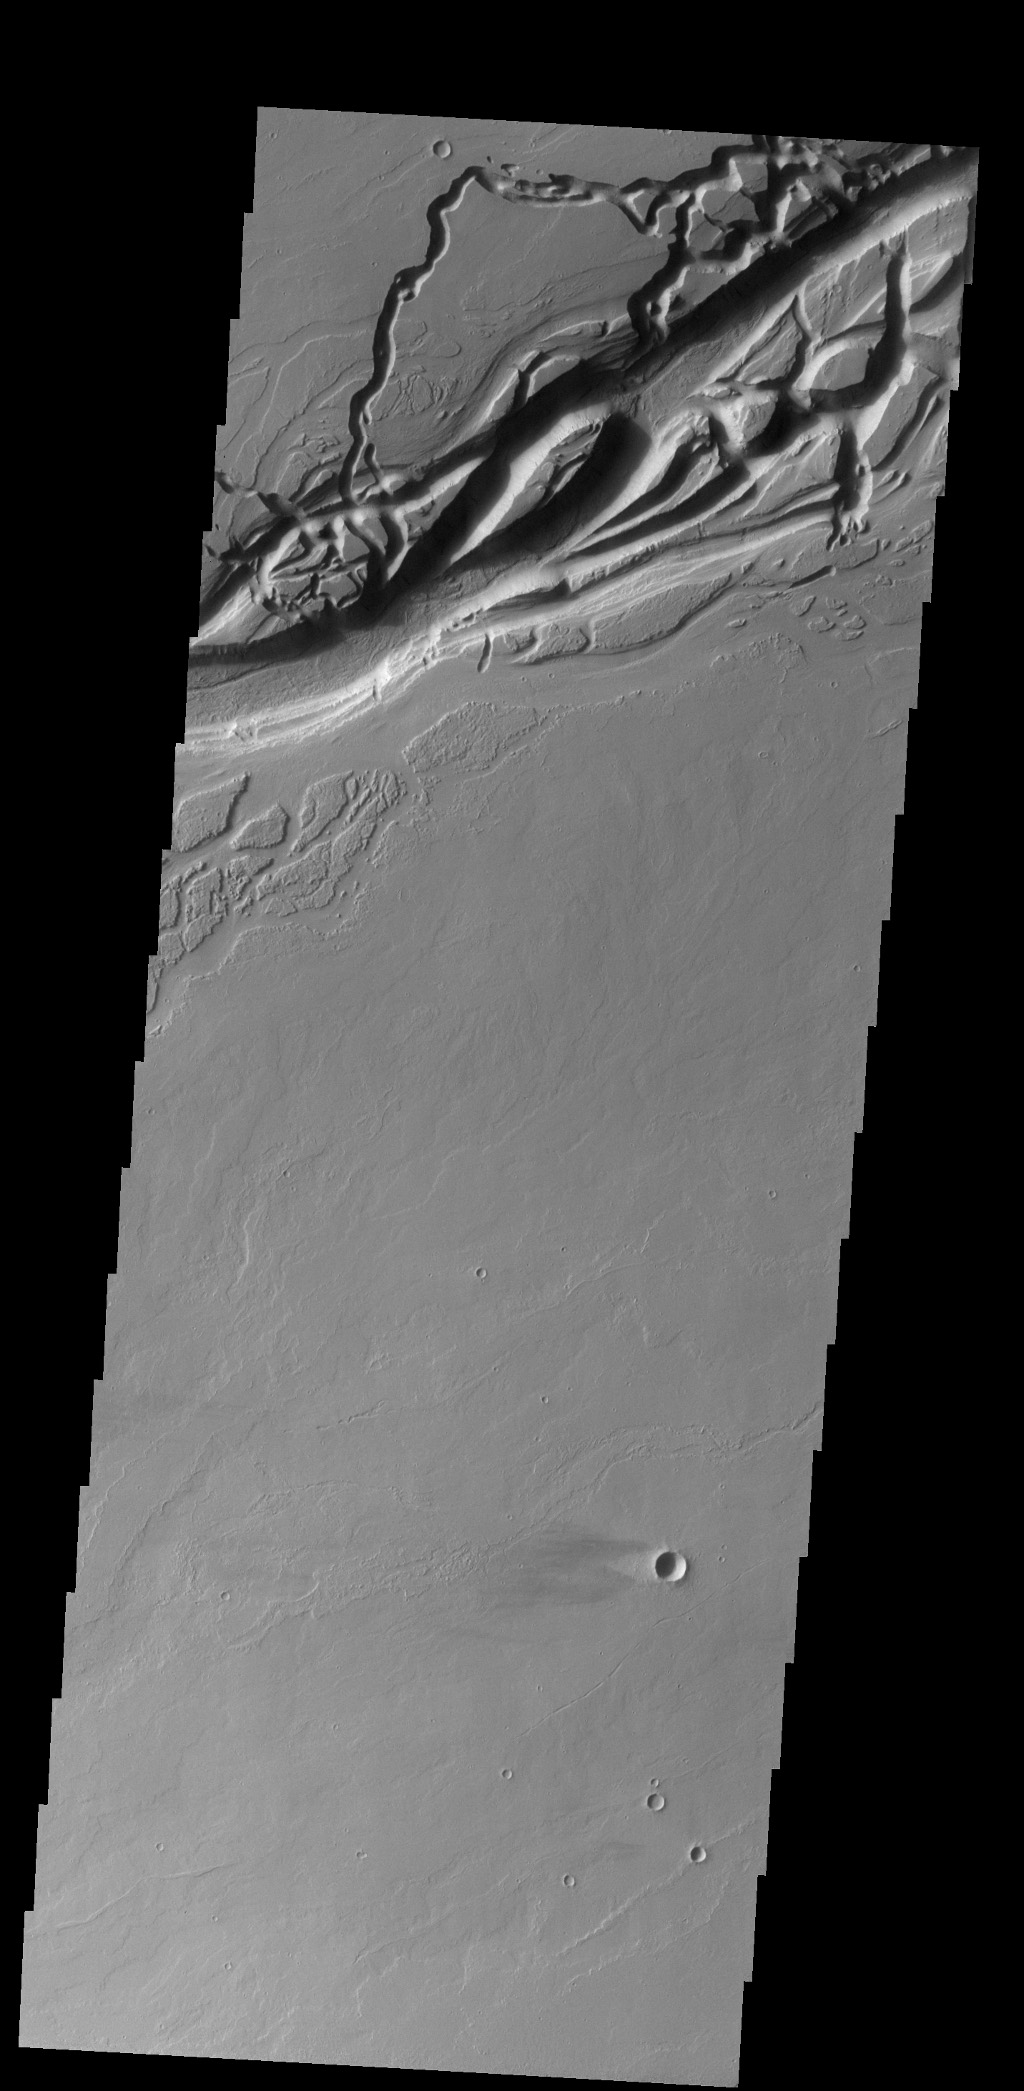 The complex channel in this image captured by NASA's 2001 Mars Odyssey spacecraft is part of Olympica Fossae, and was most likely formed by the flow of lava.